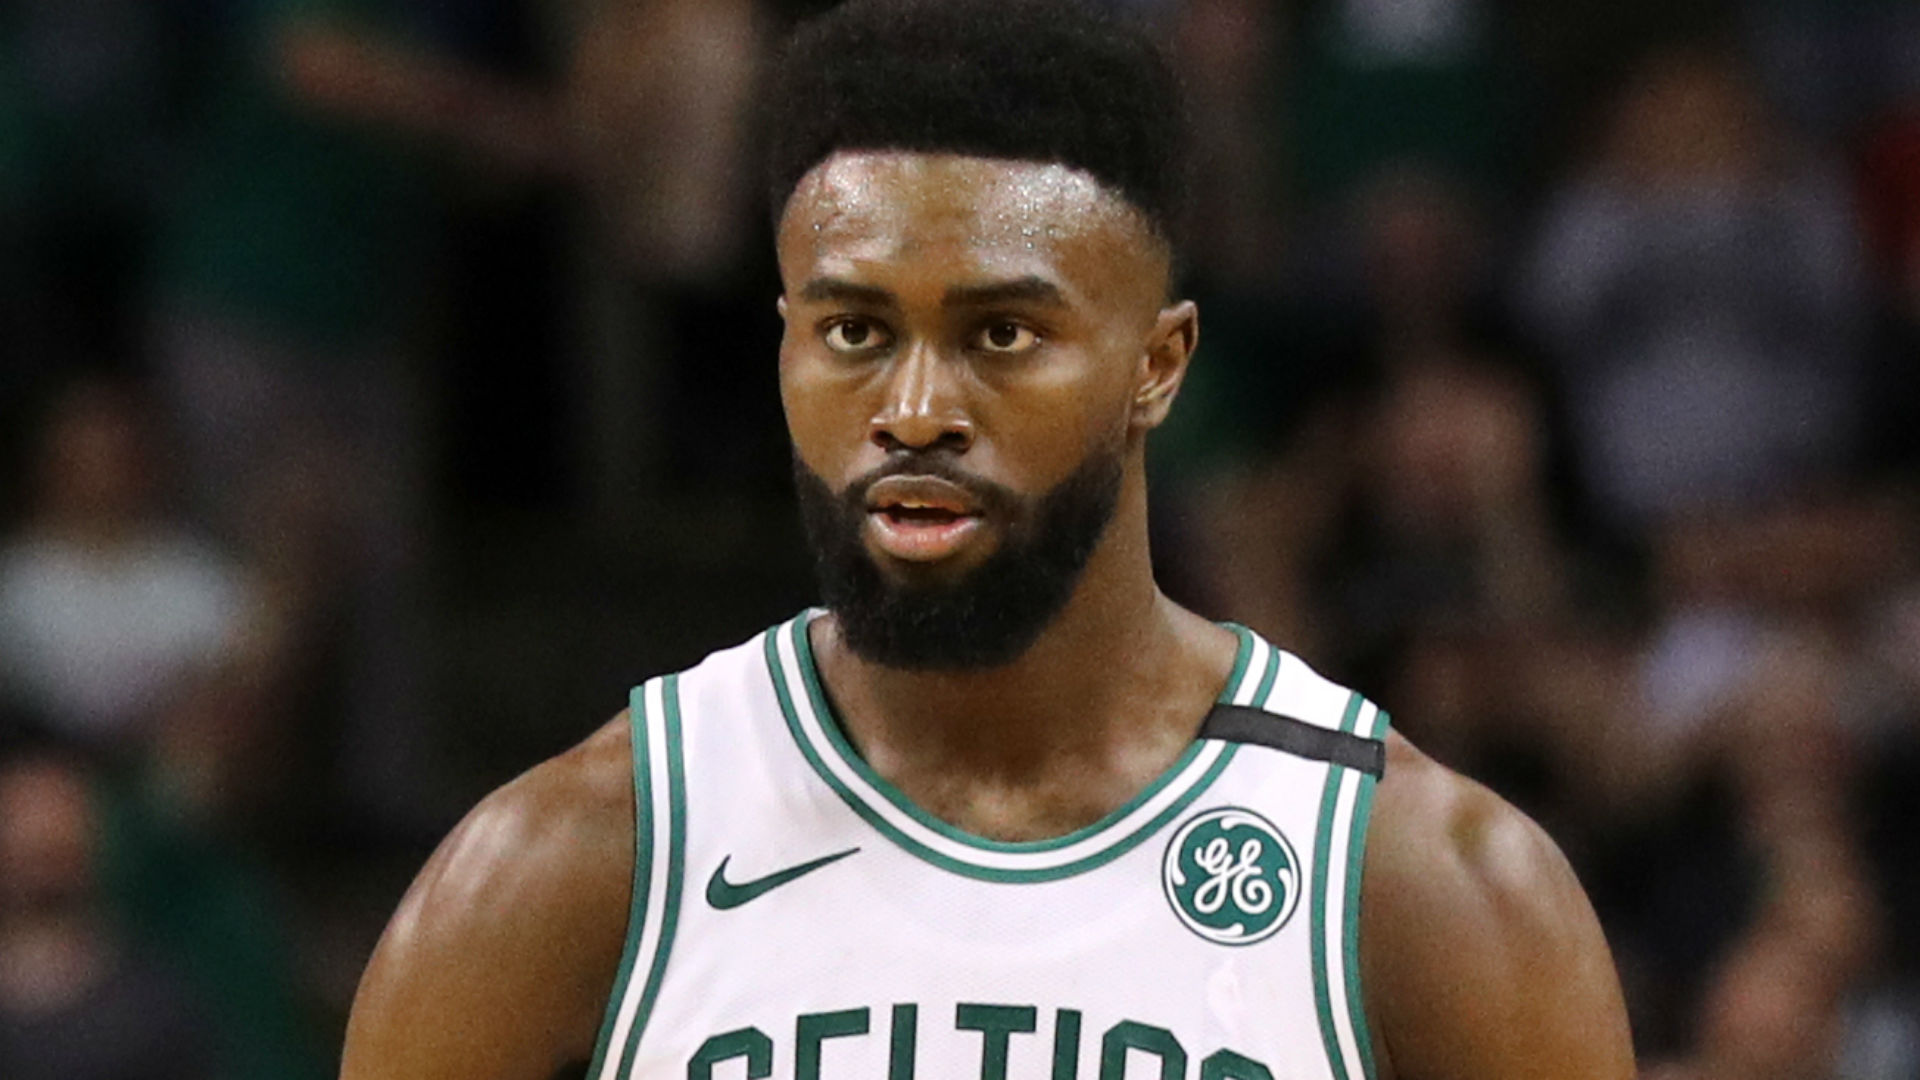 Jaylen Brown Wants To Change The 'Toxic' Atmosphere Around The Celtics